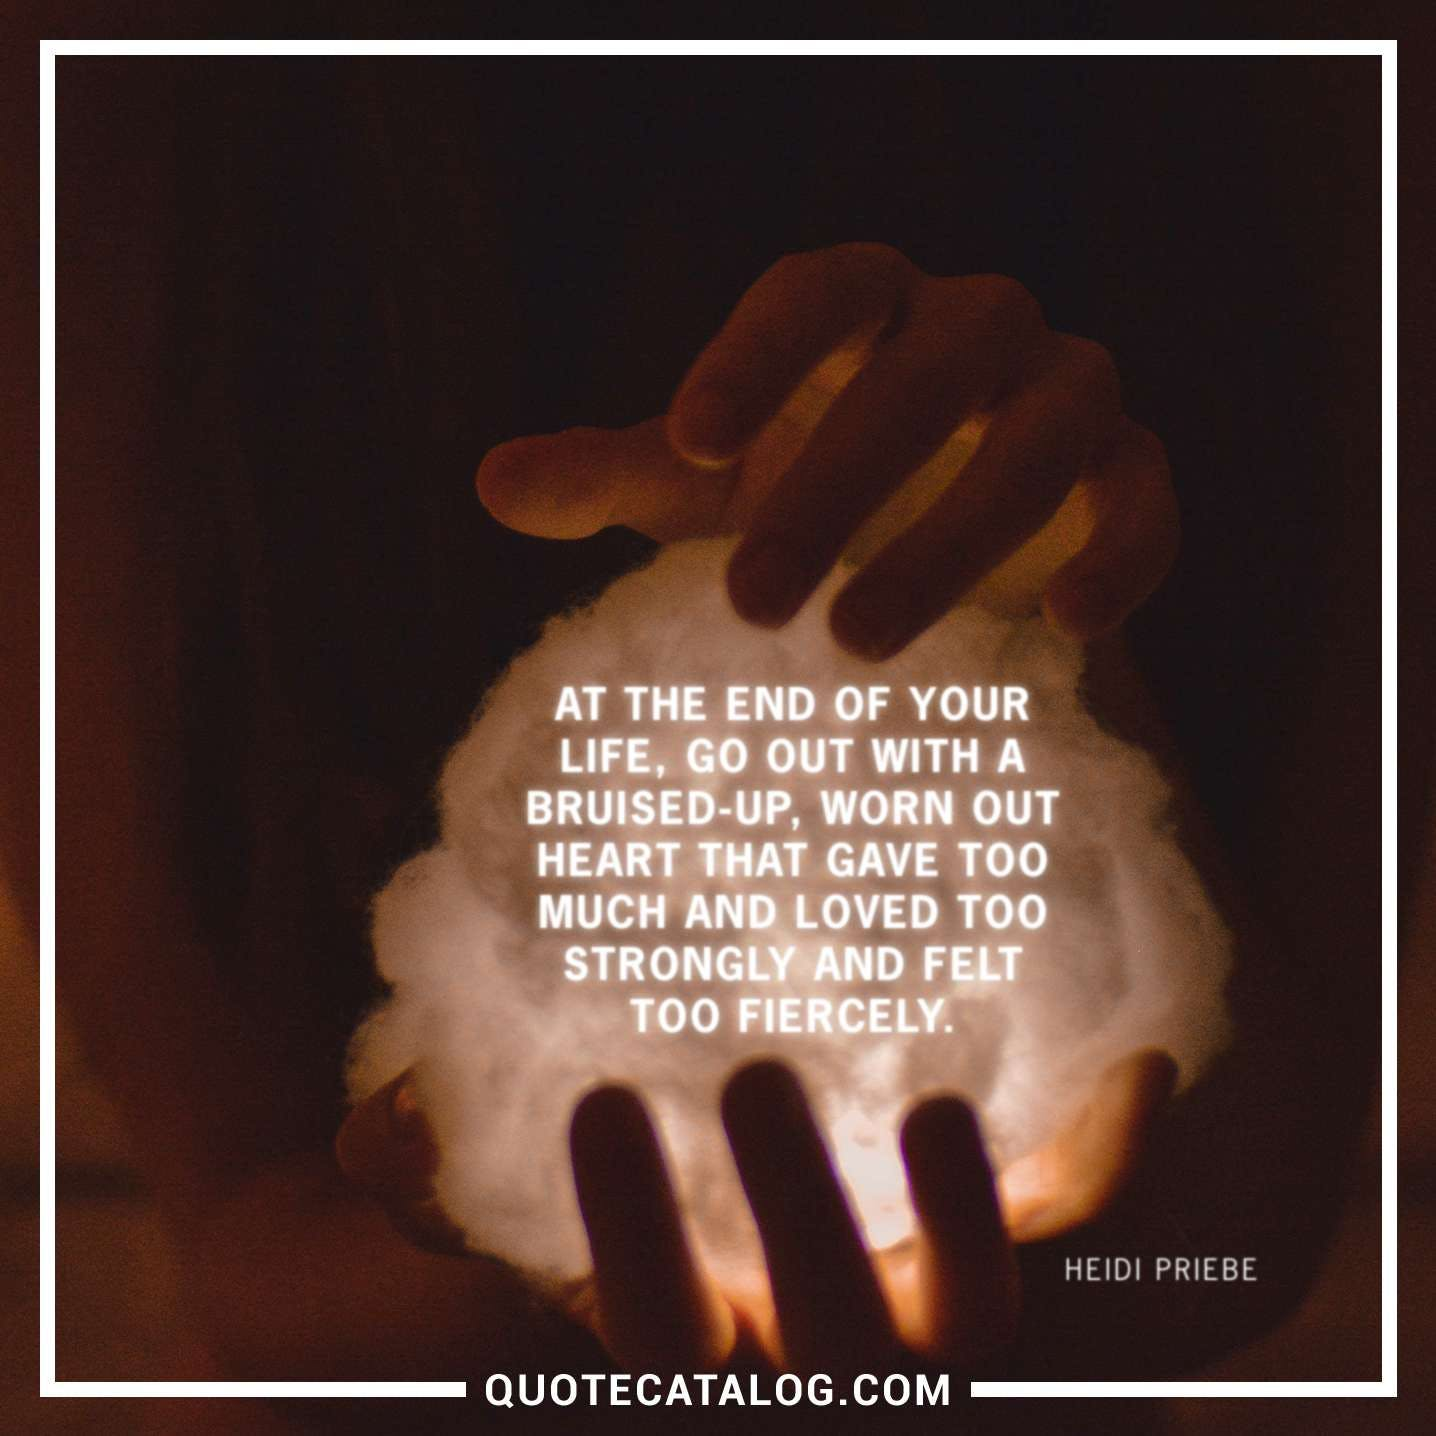 At the end of your life, go out with a bruised-up, worn out heart that gave too much and loved too strongly and felt too fiercely.